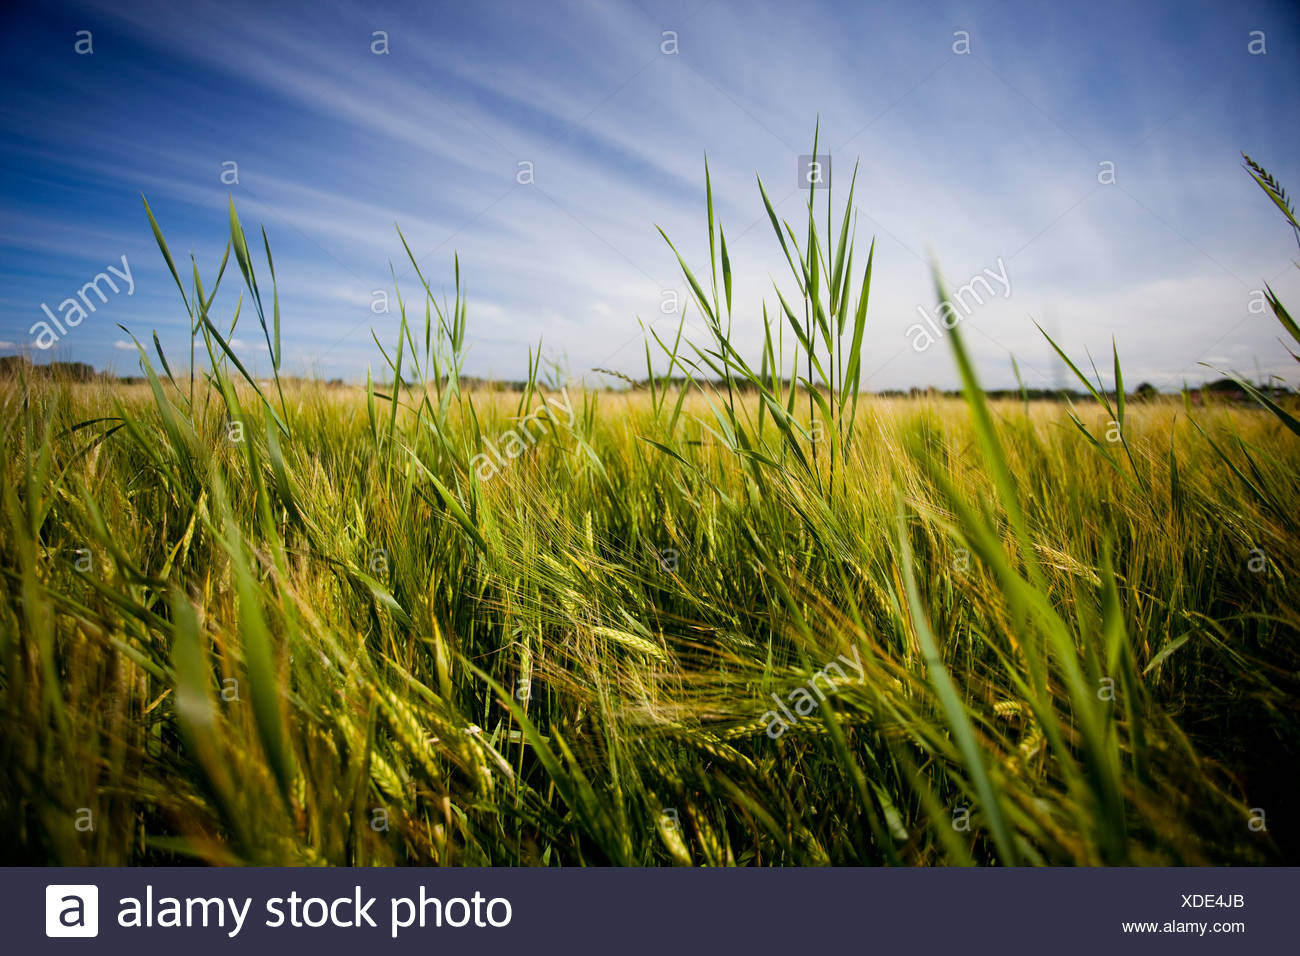 Field in the wind - Stock Image